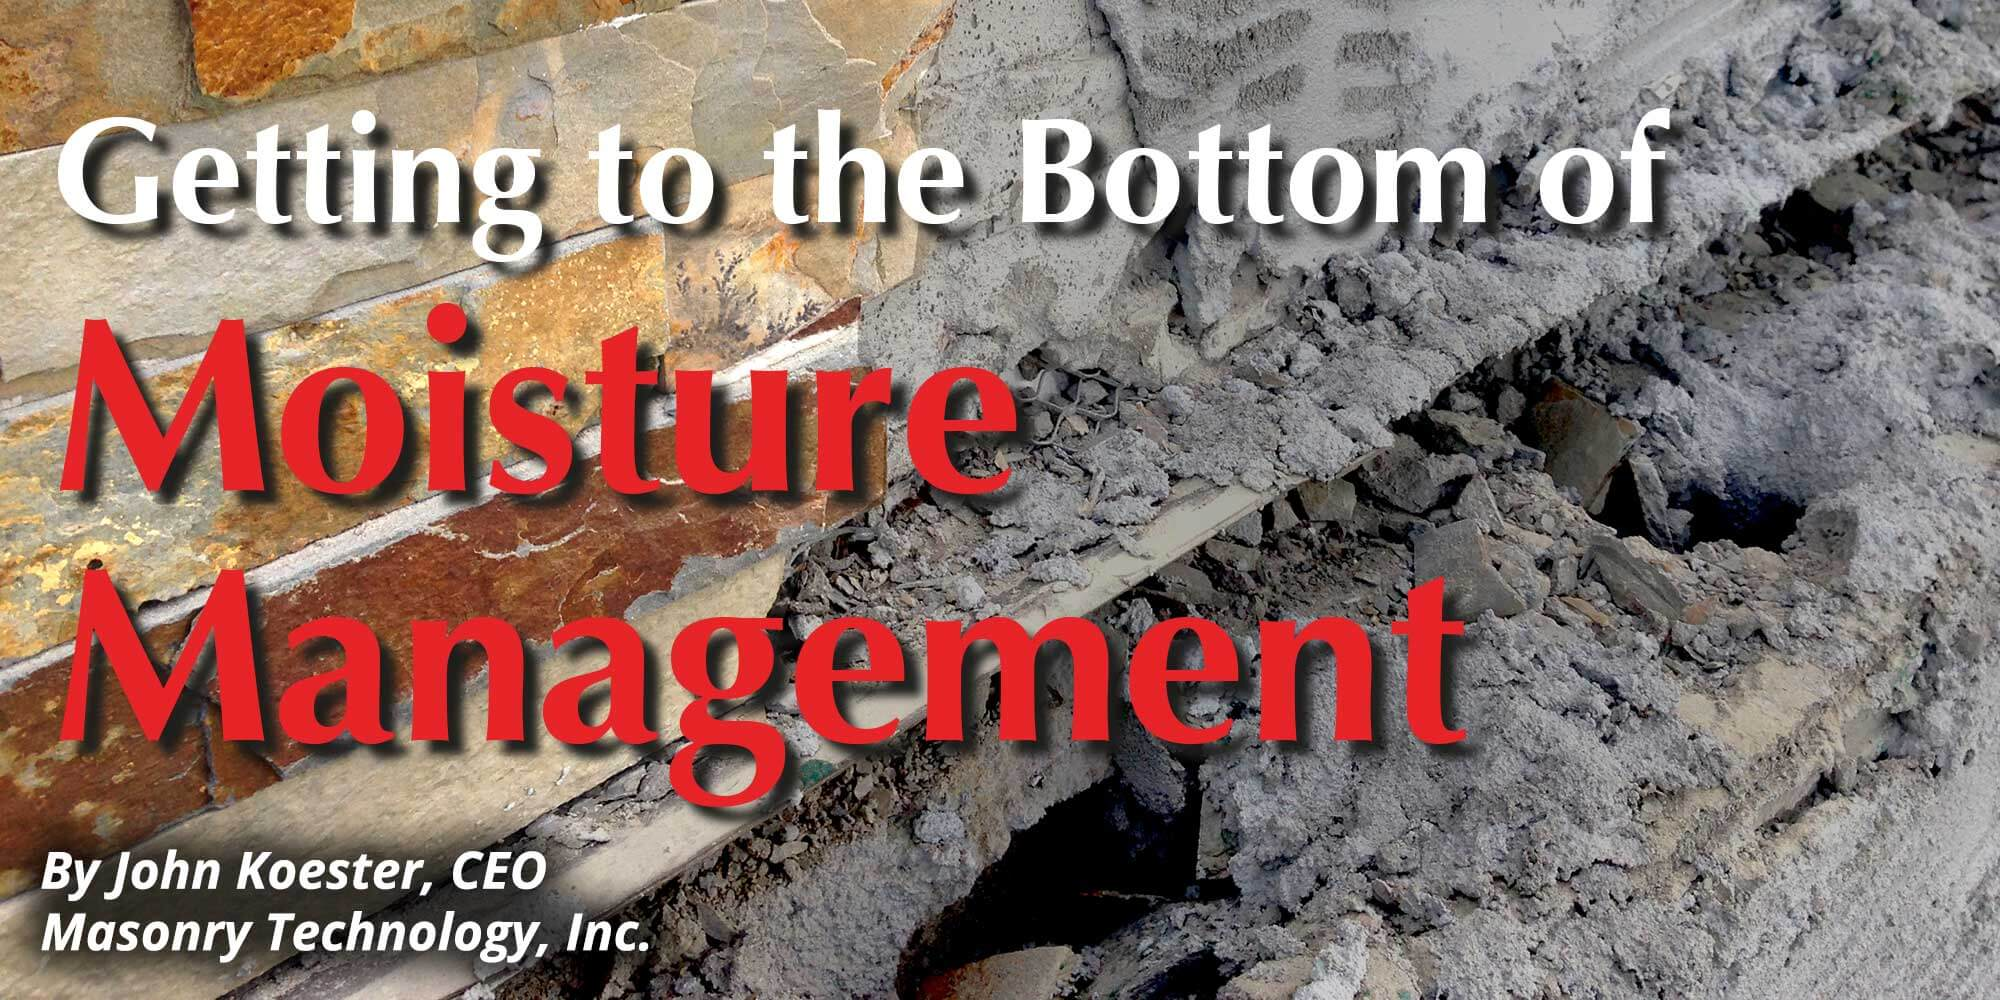 Getting to the Bottom of Moisture Managment